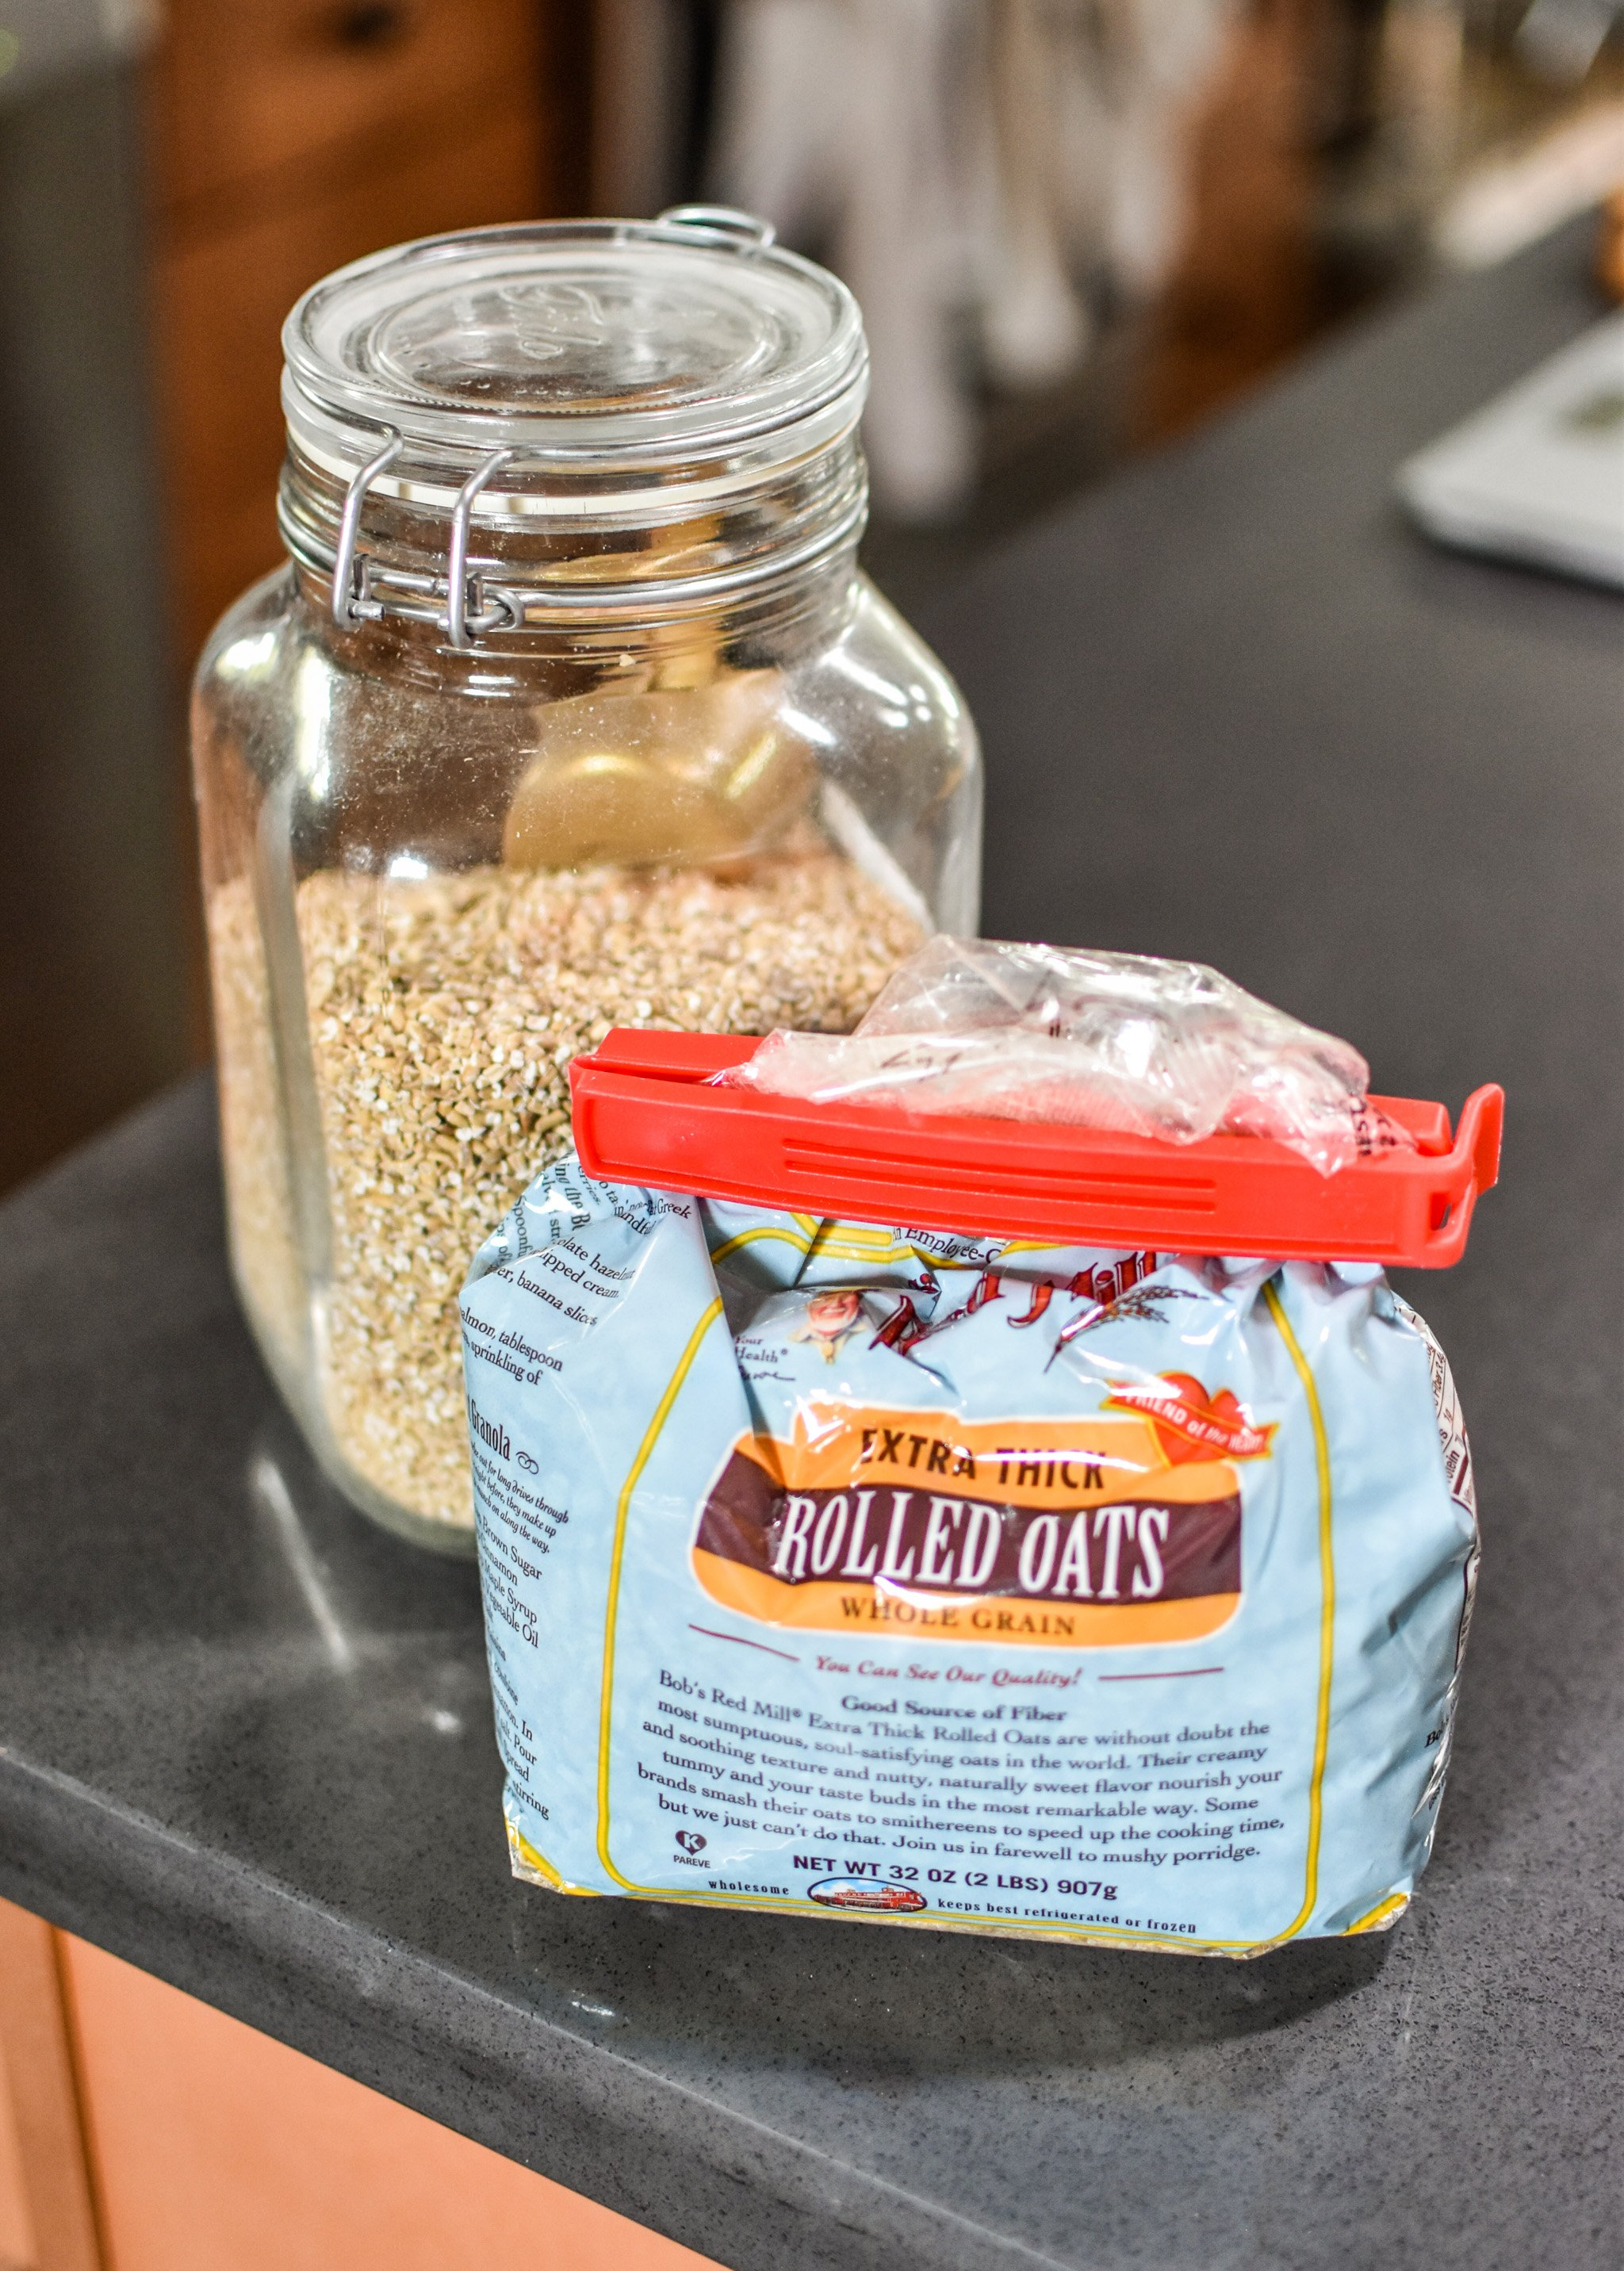 Oats are great to meal prep. 10 meal prep foods always in my kitchen